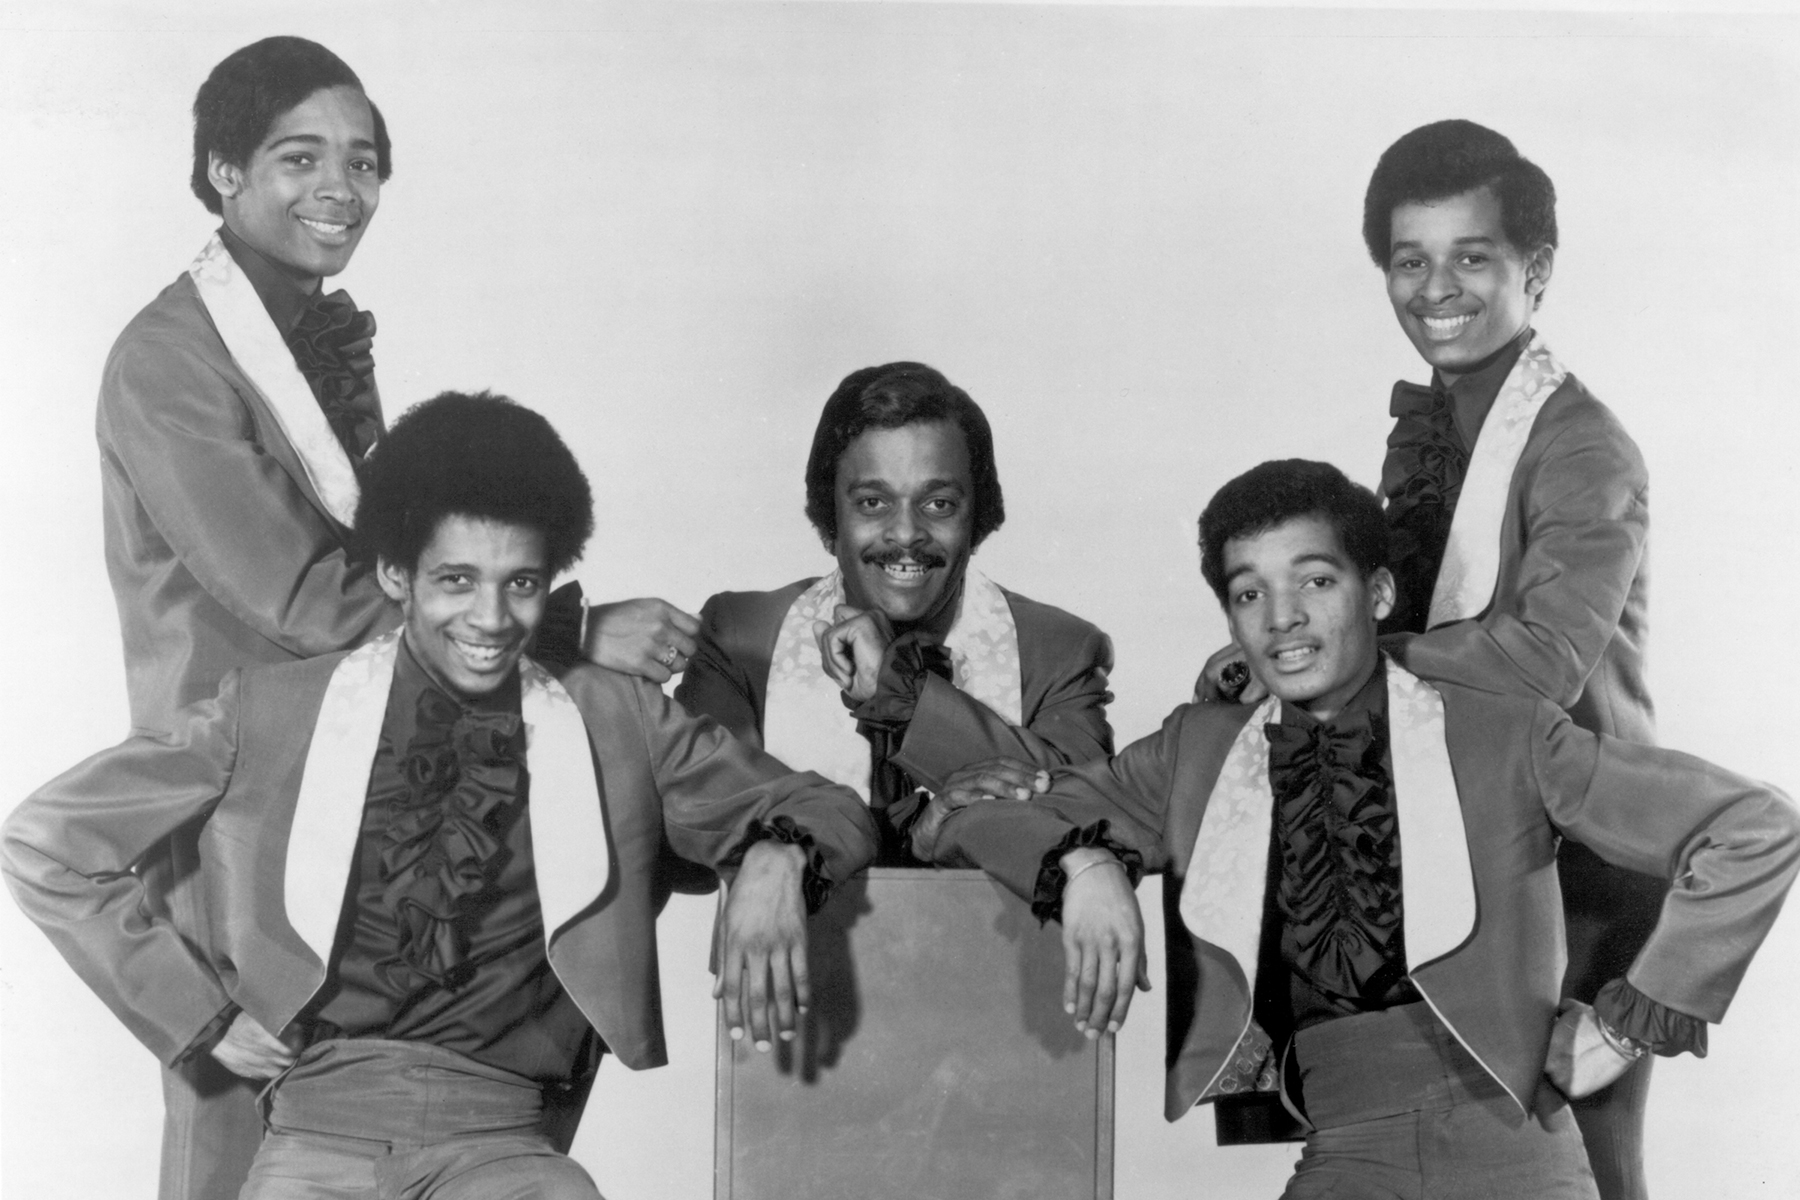 James Burke, Five Stairsteps Singer Who Crooned 'O-o-h Child,' Dead at 70